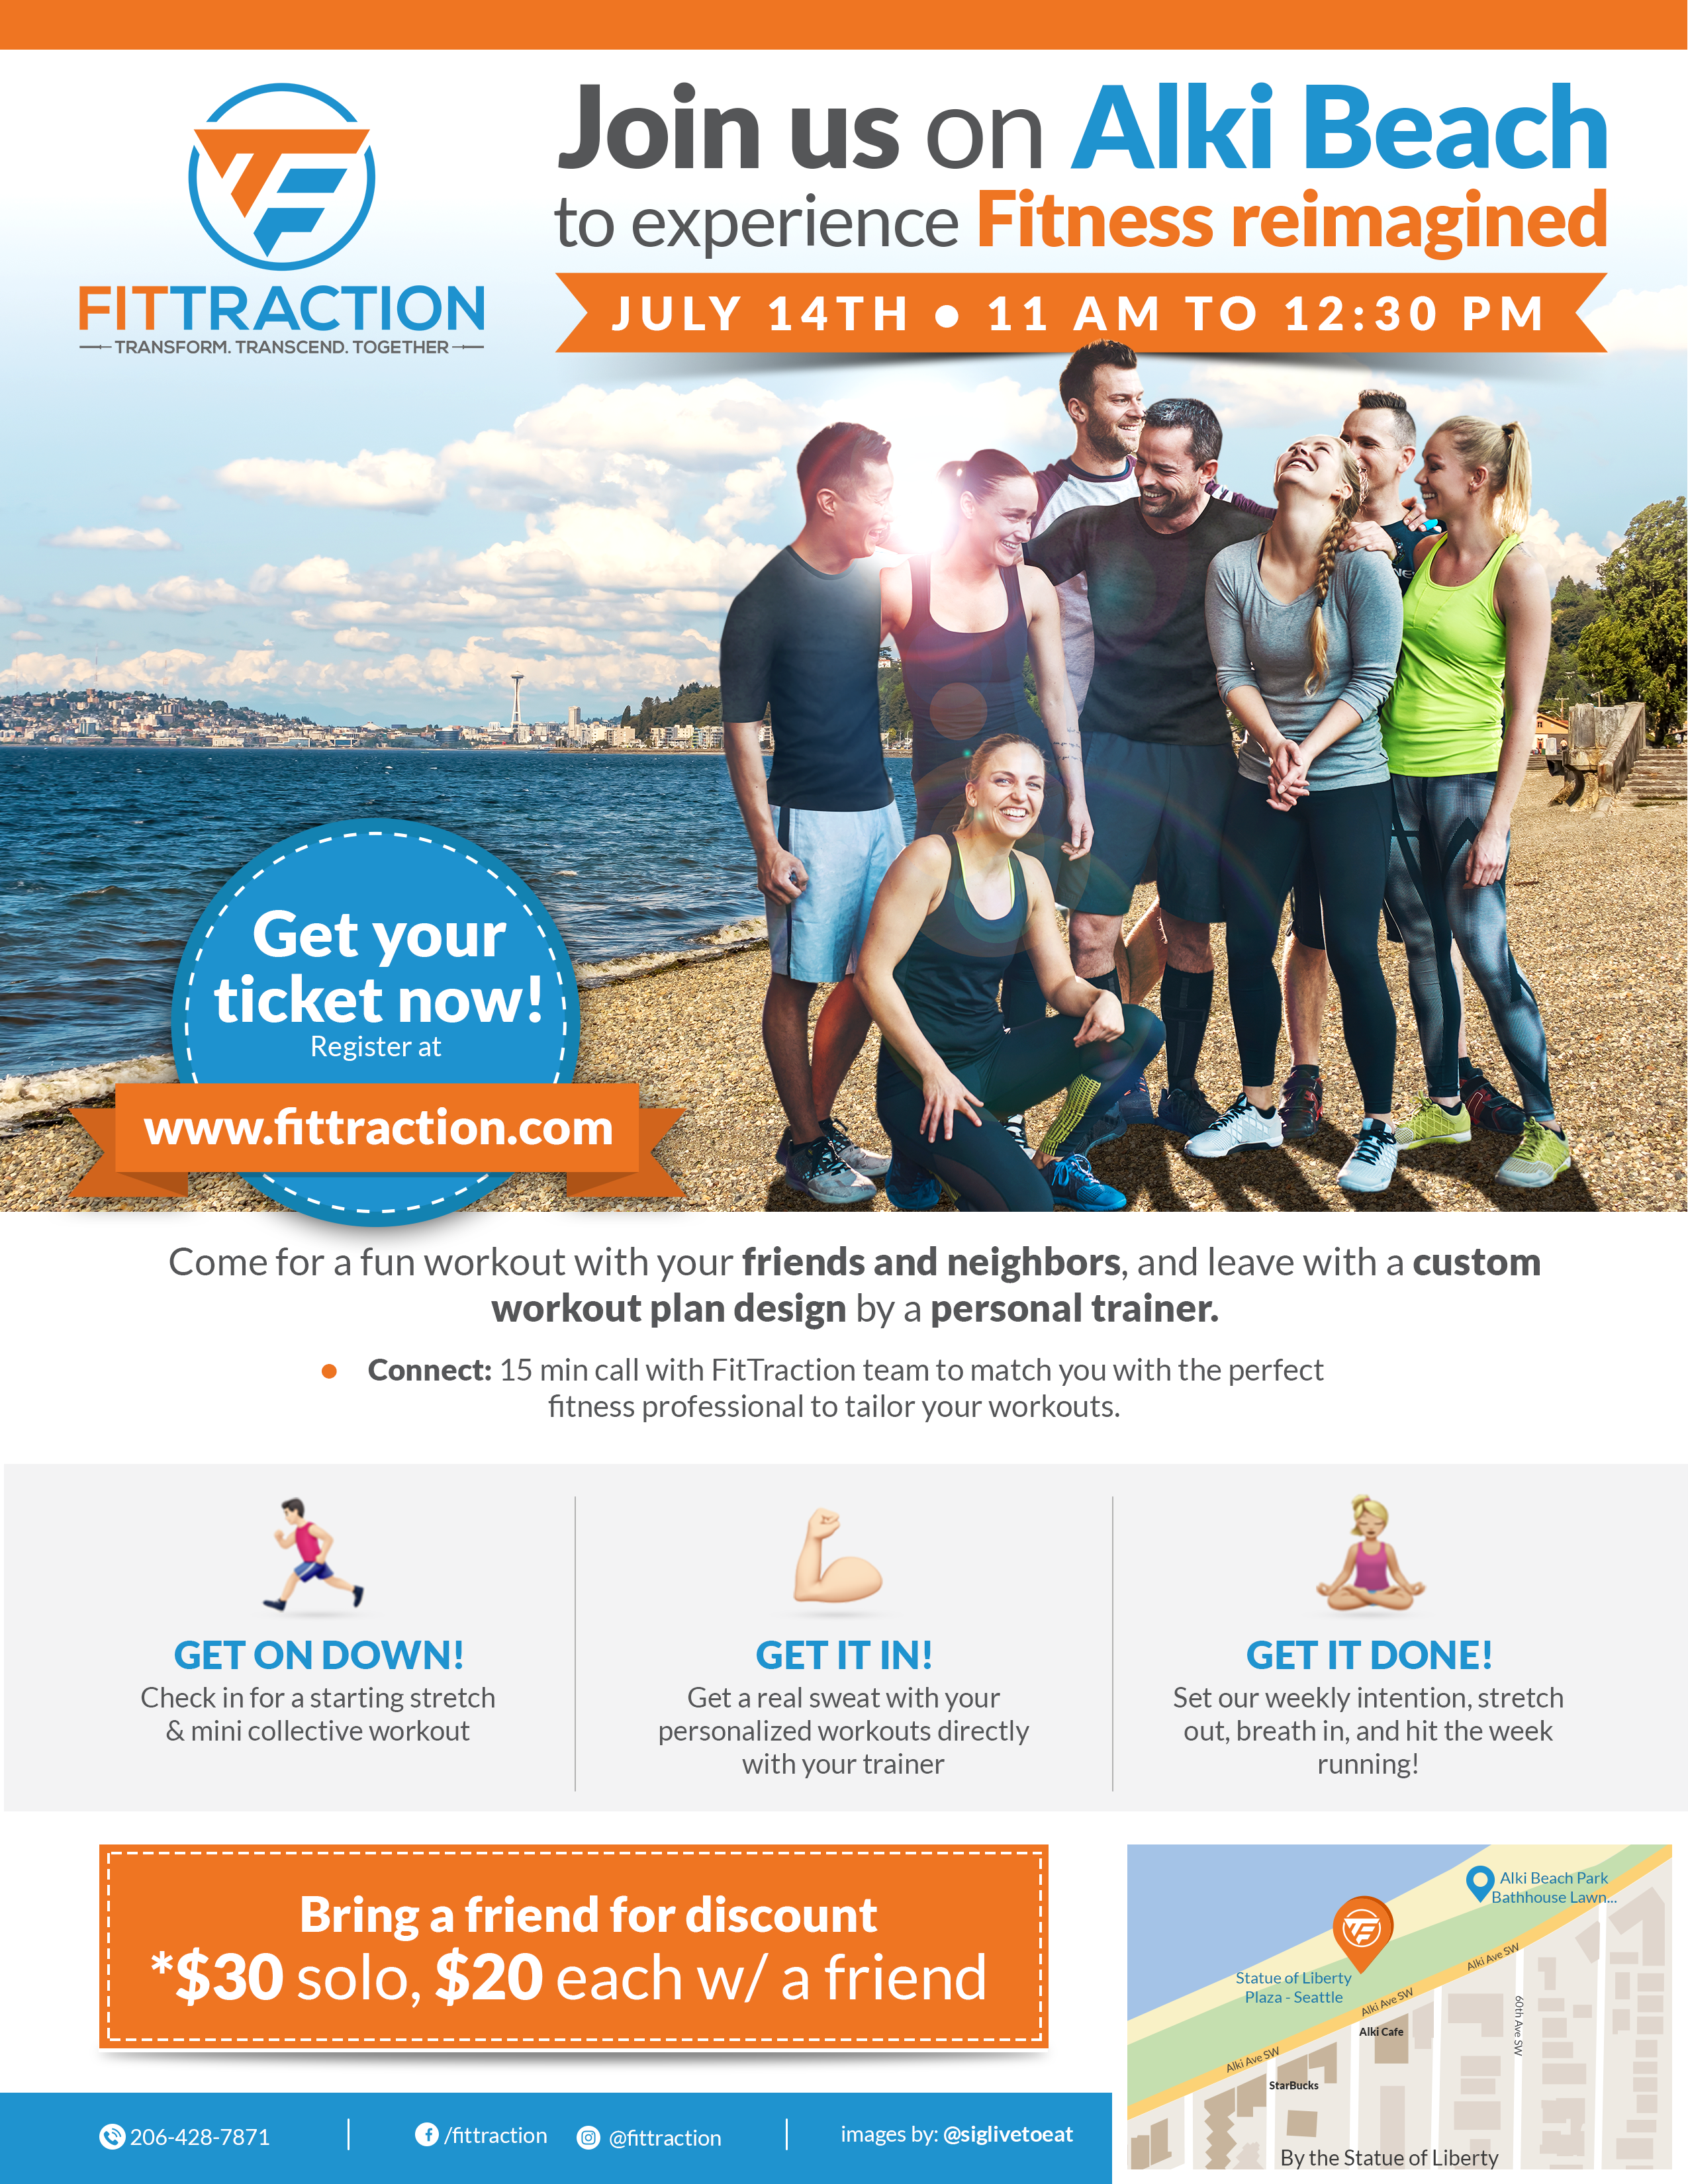 FitTraction Beach Fitness Event Flyer Contest